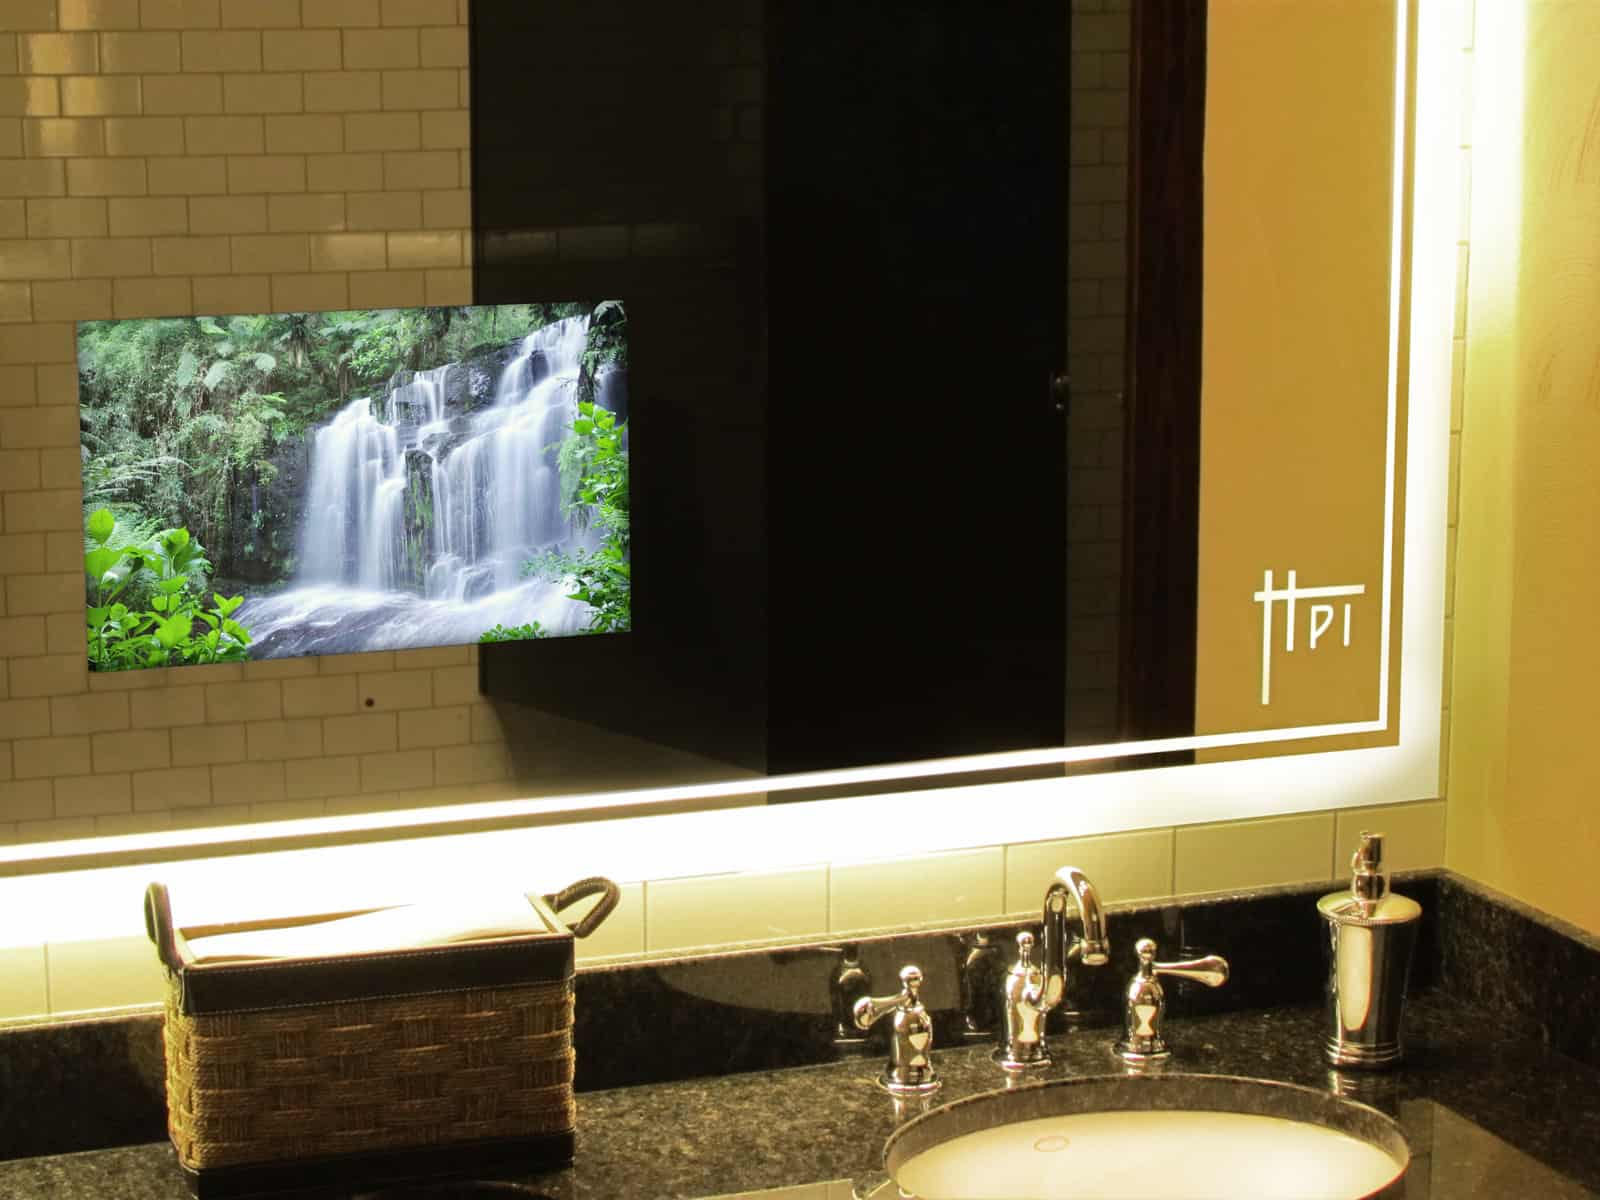 mirror tv for bathroom tv when you want it decor when you need it domes av 19500